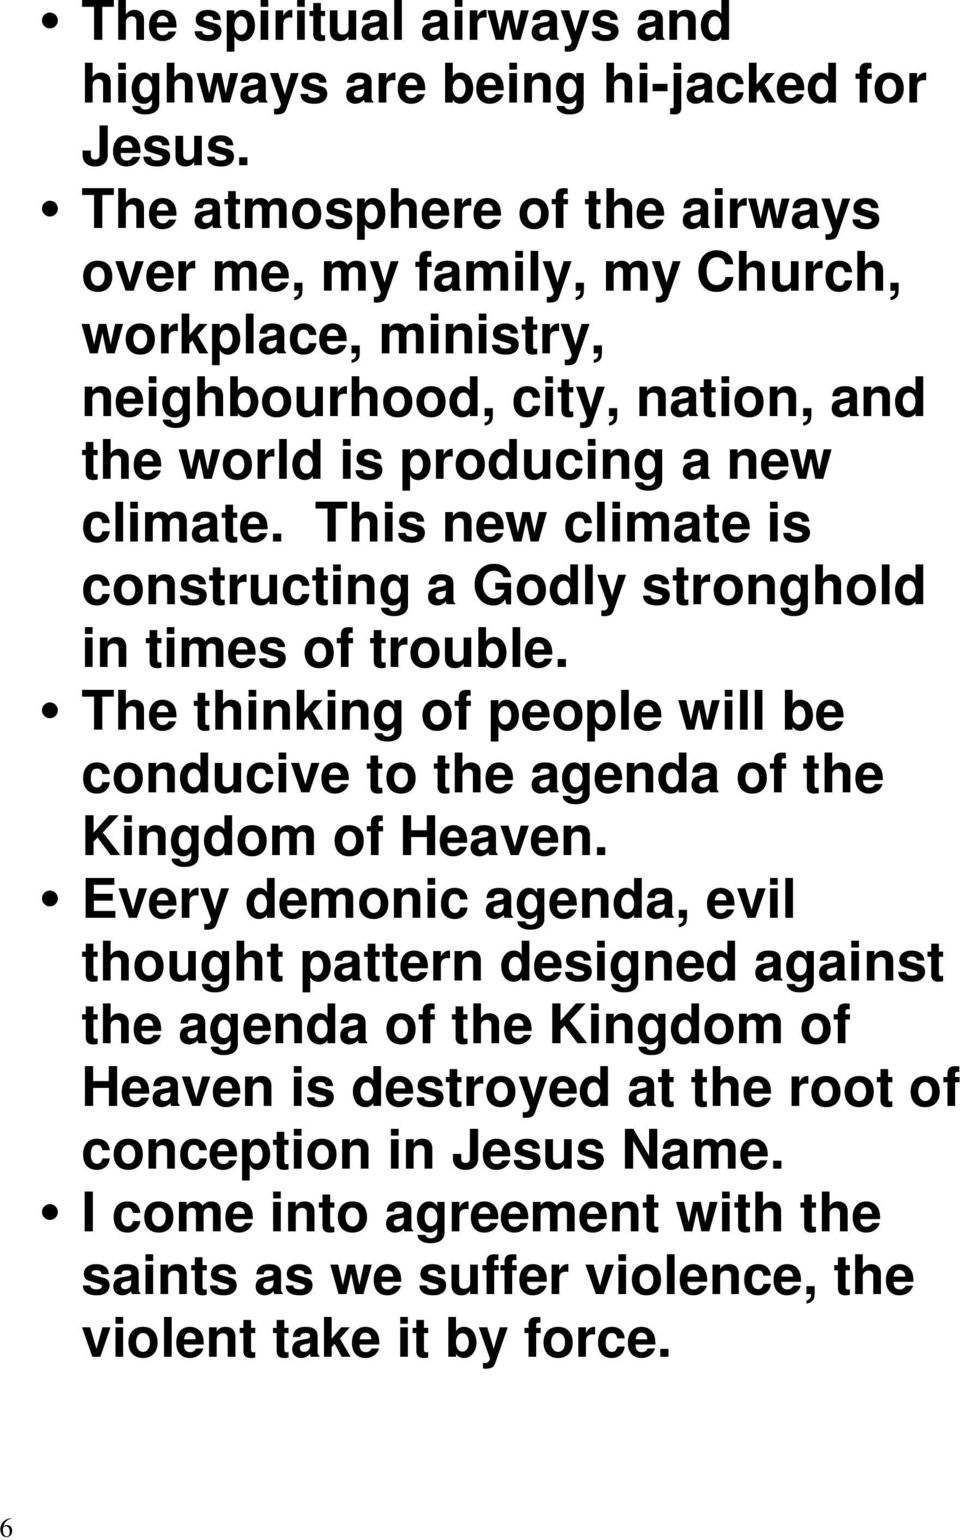 This new climate is constructing a Godly stronghold in times of trouble. The thinking of people will be conducive to the agenda of the Kingdom of Heaven.